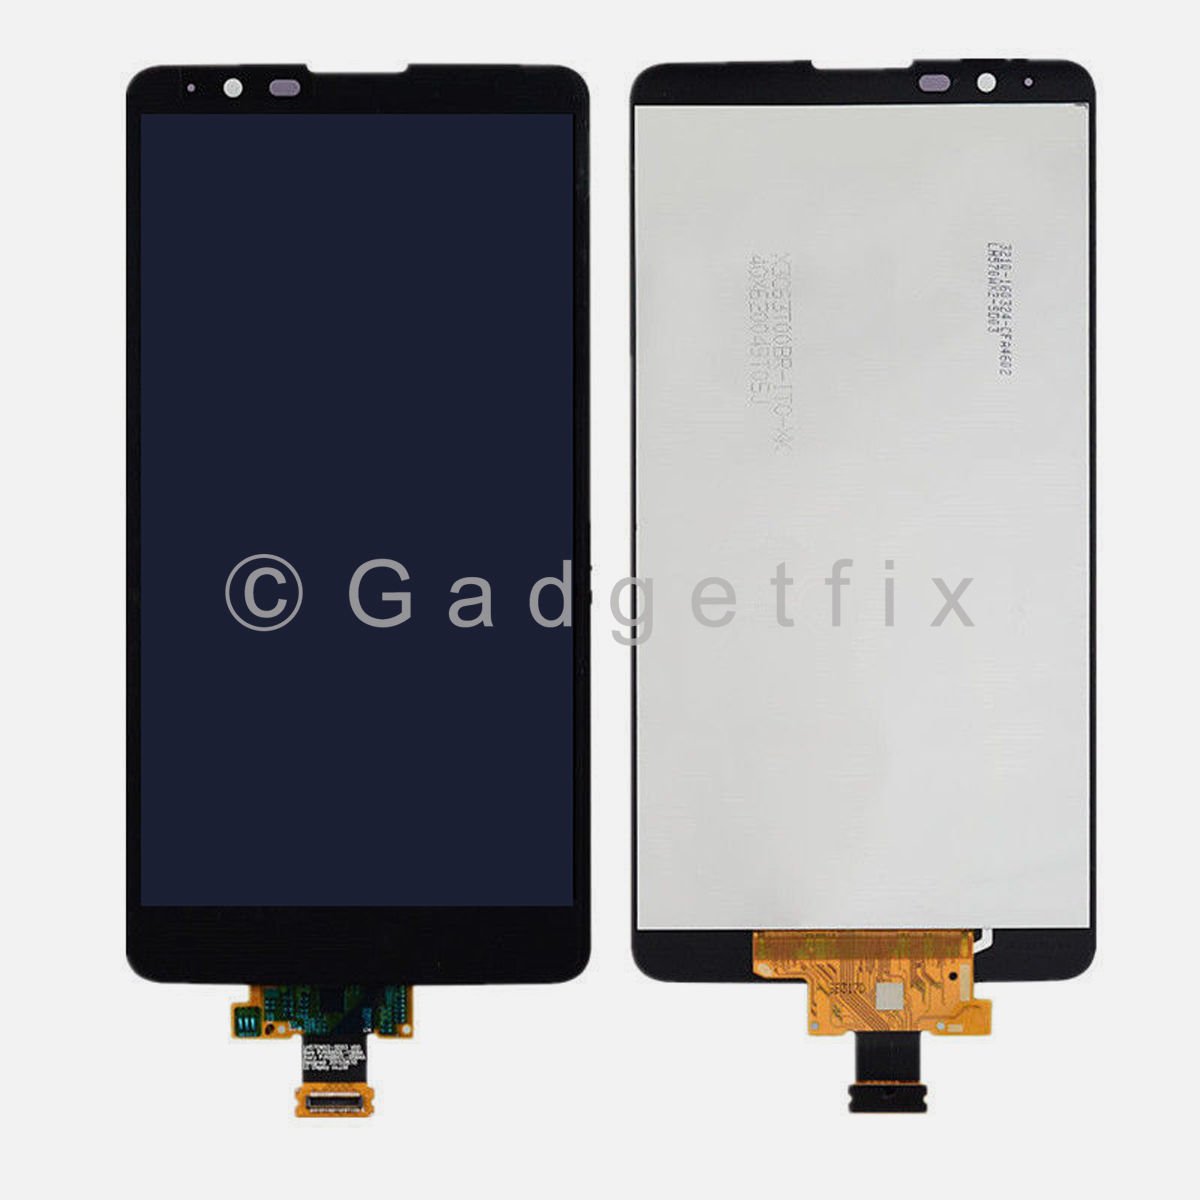 LG Stylo 2 LS775 Stylus 2 K540 LCD Display Touch Screen Digitizer Replacement